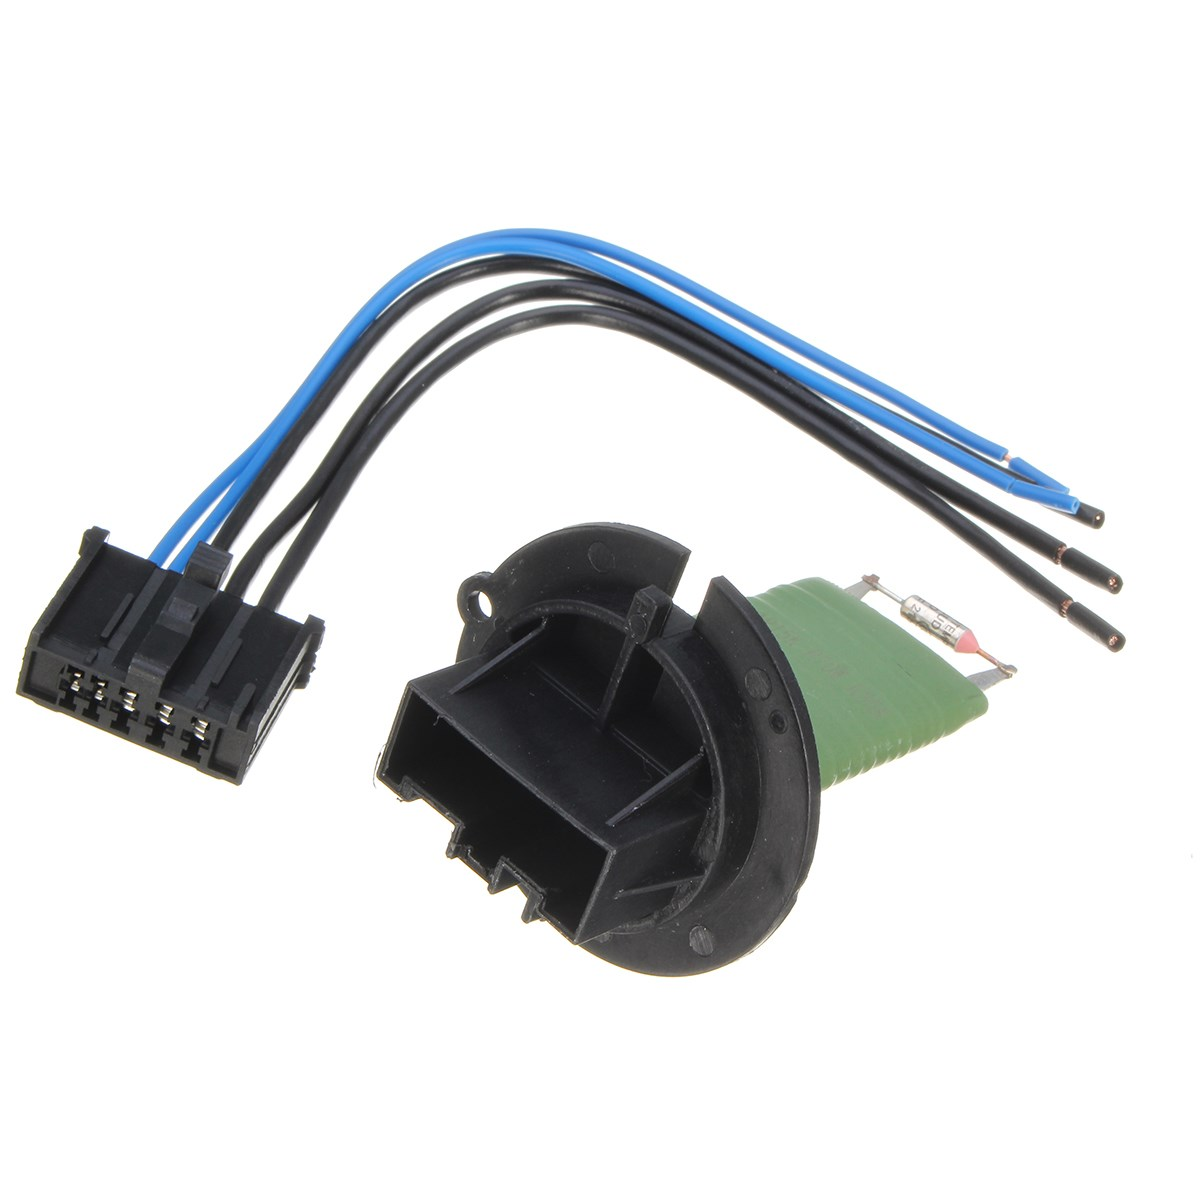 Heater Motor Resistor Connector Wiring Harness For Peugeot 206 307 Citroen Jumper 3 Diagram Improve C3 In Interior Mouldings From Automobiles Motorcycles On